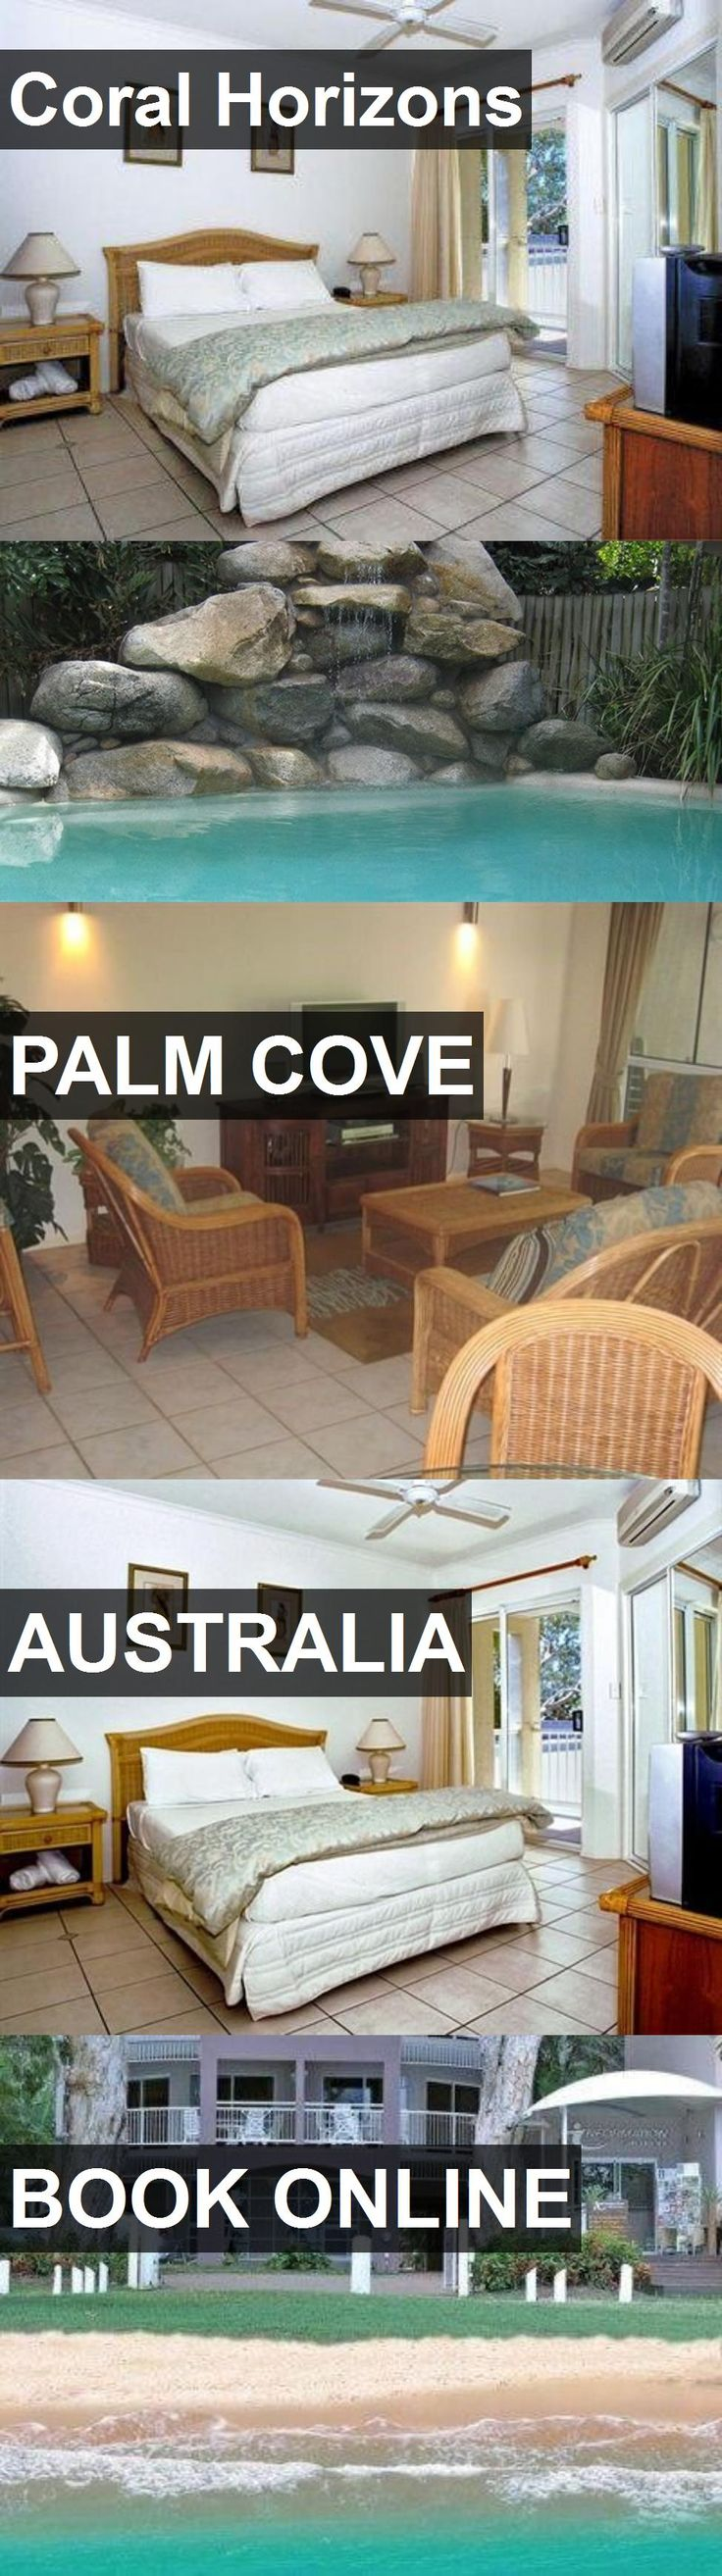 Hotel Coral Horizons in Palm Cove, Australia. For more information, photos, reviews and best prices please follow the link. #Australia #PalmCove #travel #vacation #hotel